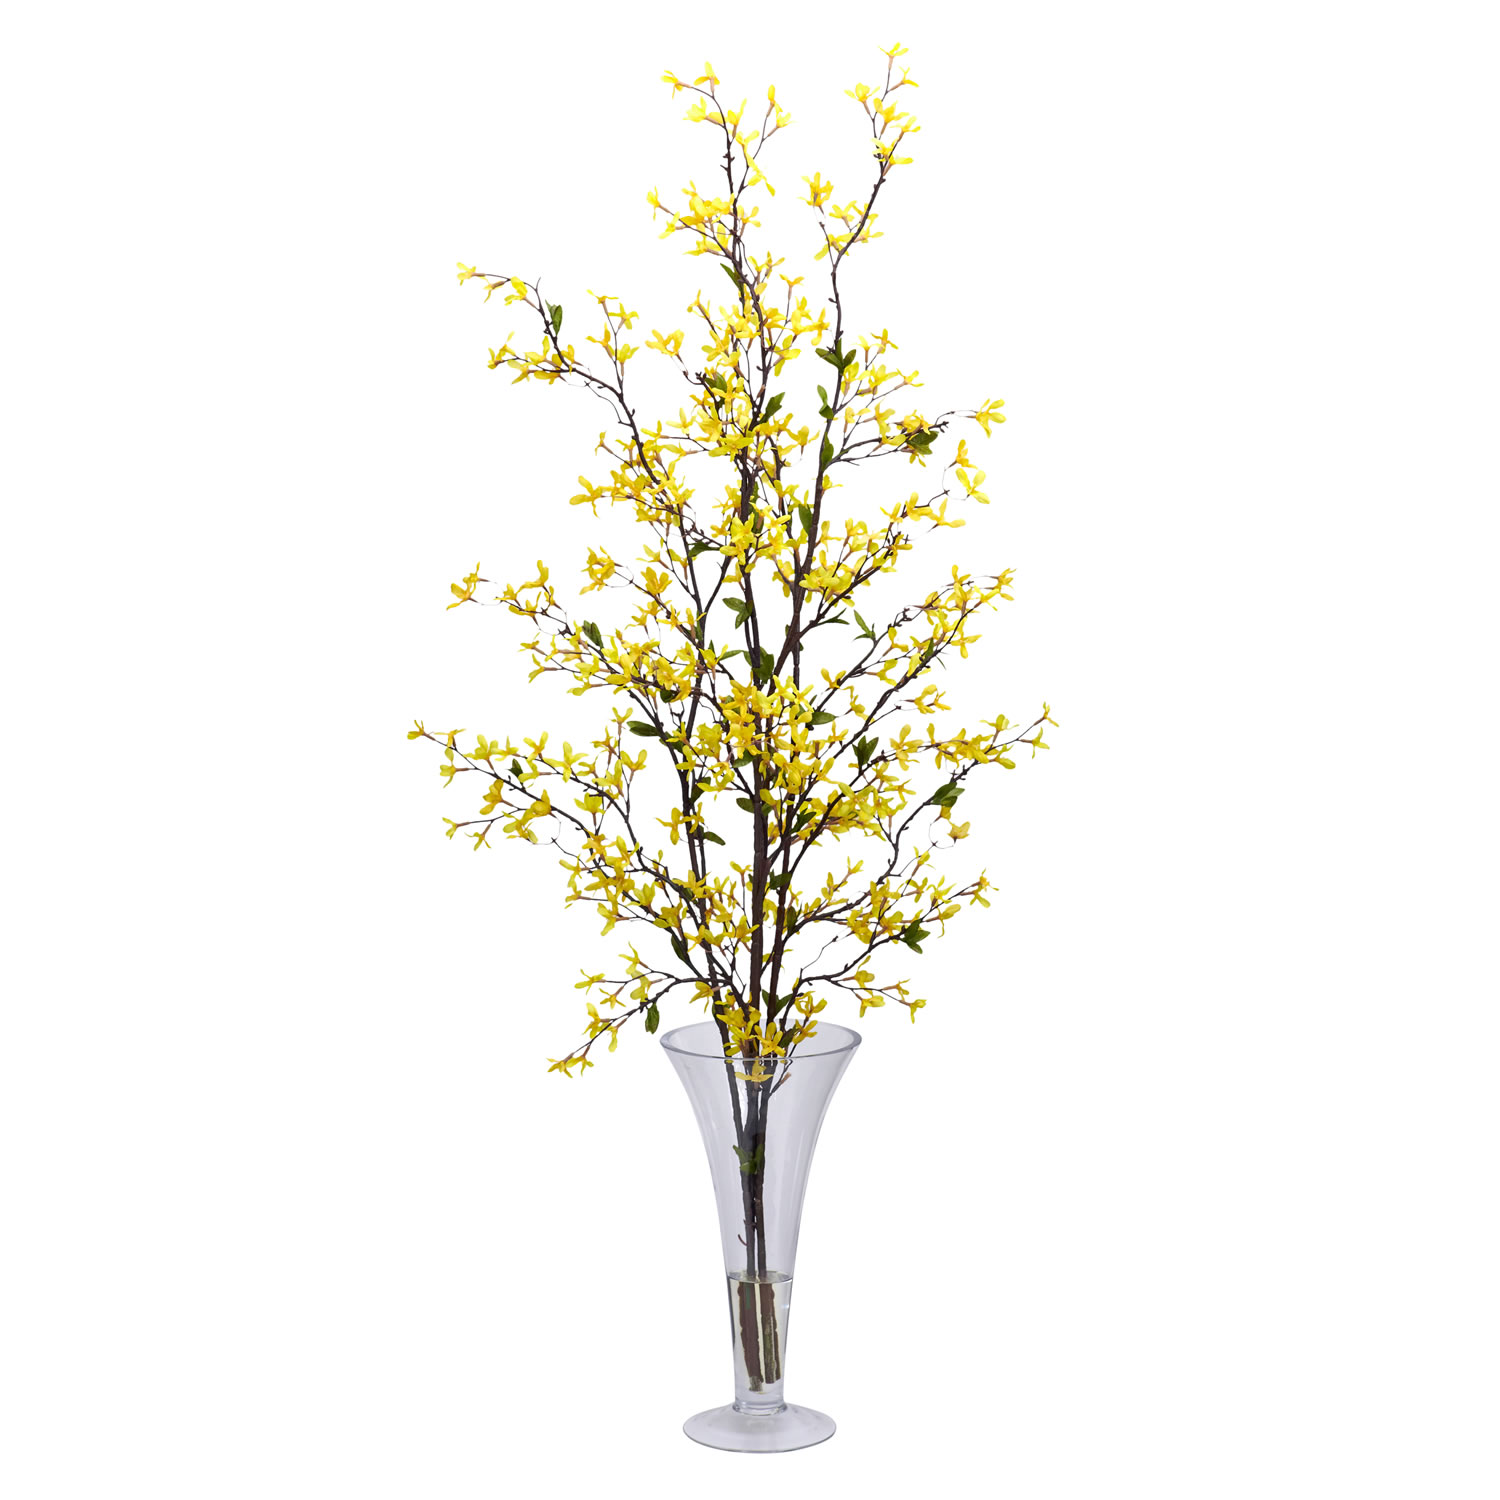 Forsythia wvase silk flower arrangement silk specialties forsythia wvase silk flower arrangement mightylinksfo